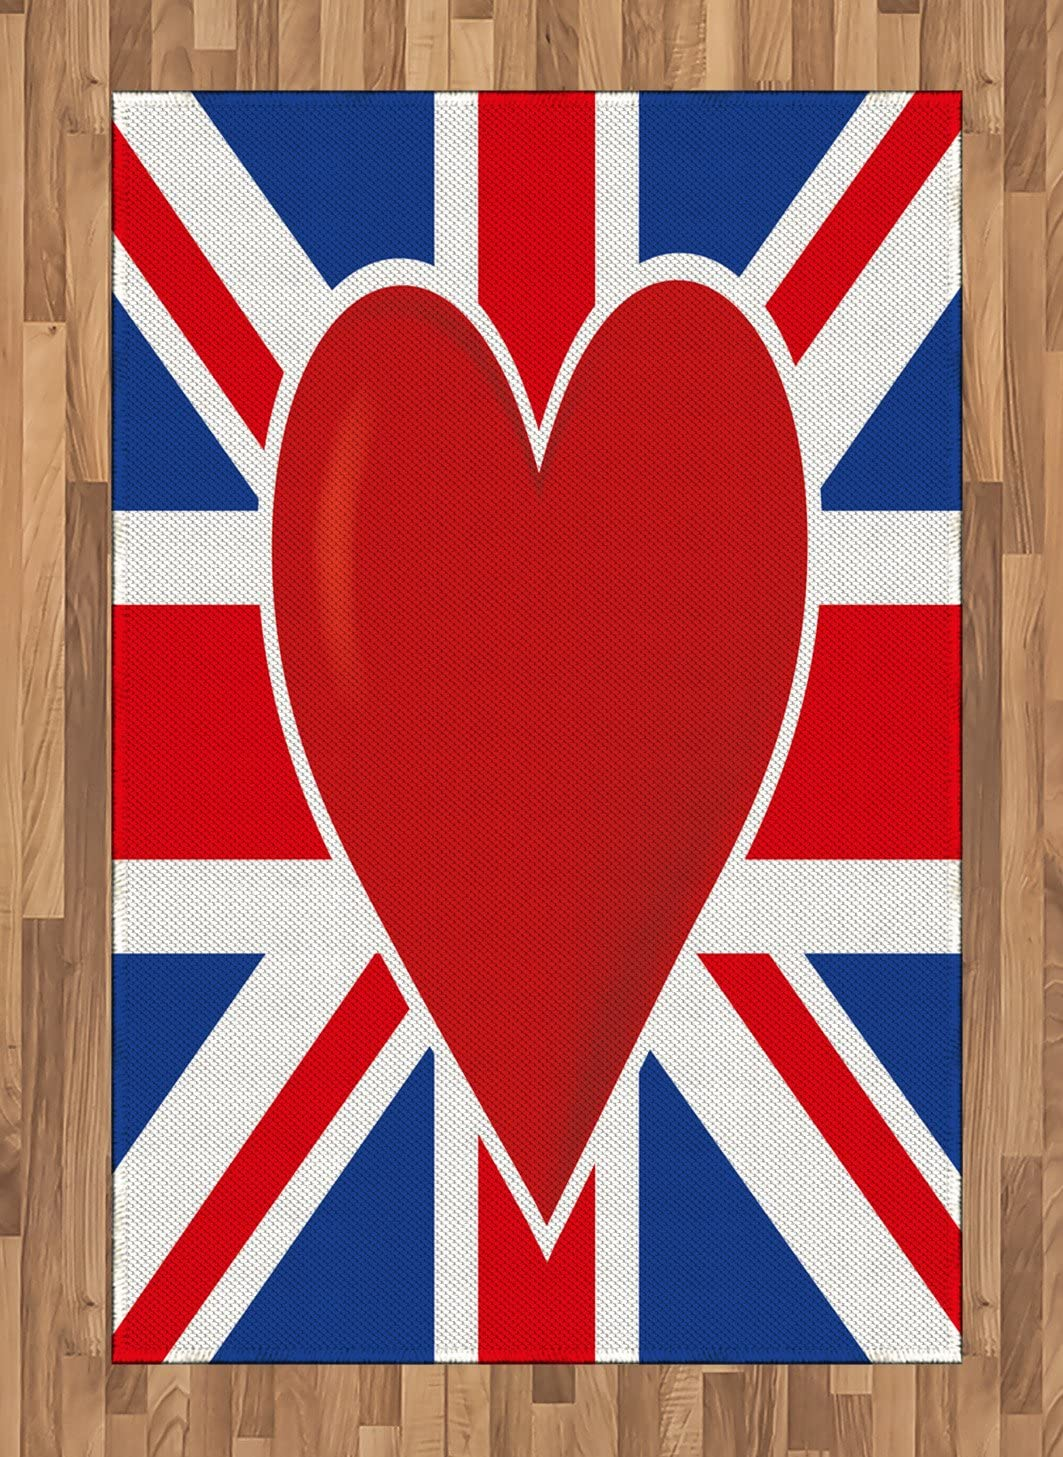 Ambesonne Union Jack Area Rug, British Flag with a Big Red Heart in Center Nationality Pride Concept, Flat Woven Accent Rug for Living Room Bedroom Dining Room, 4' X 5.7', Royal Blue Red White